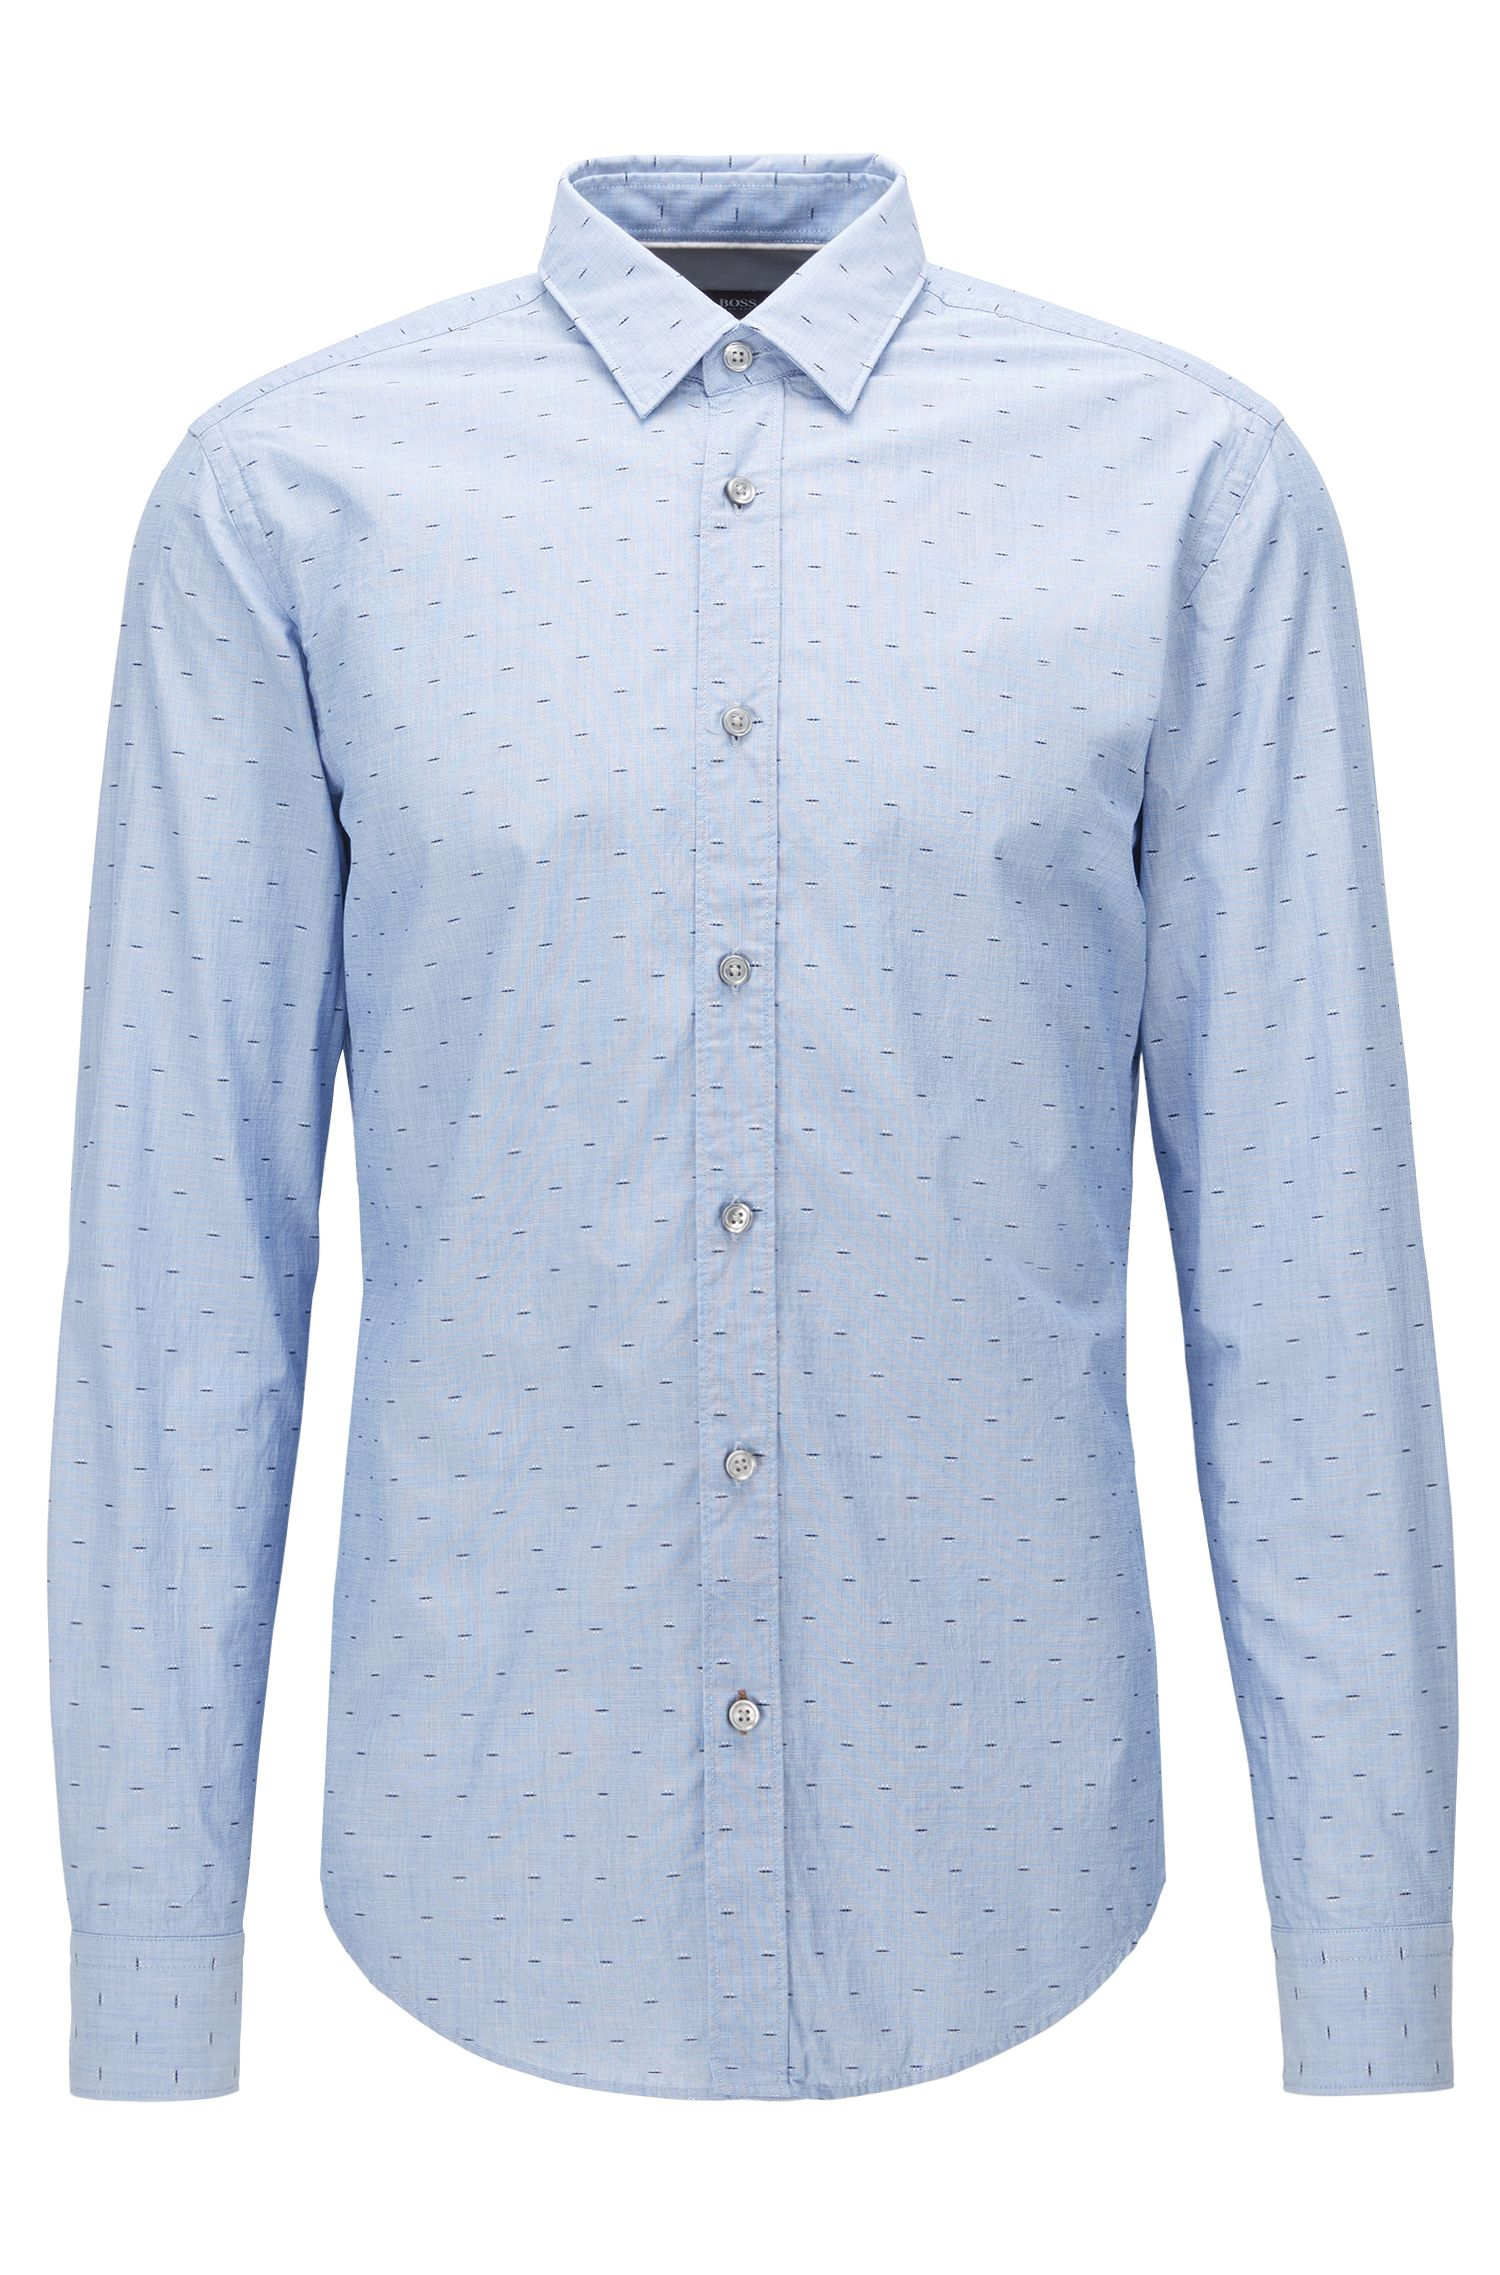 Fil Coupé Cotton Poplin Button Down Shirt, Slim Fit | Ronni